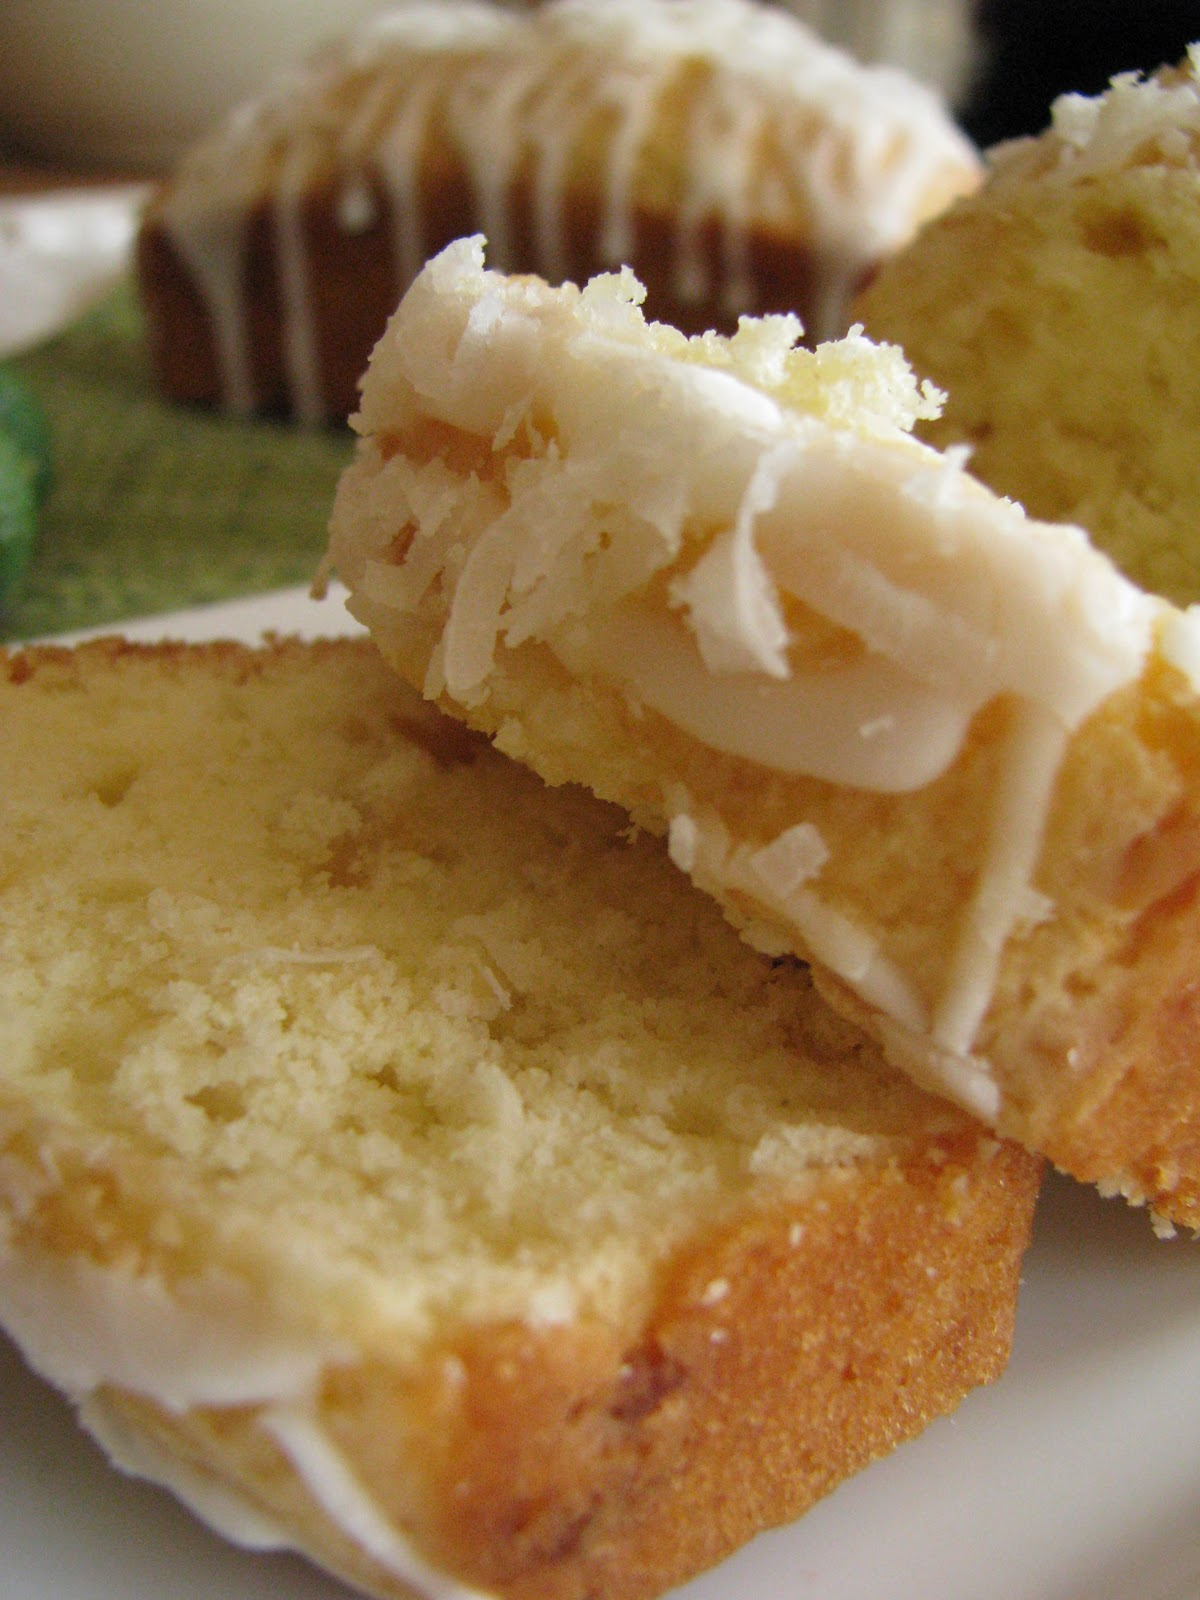 Wedding Vows And Key Lime And Coconut White Chocolate Pound Cake | The ...